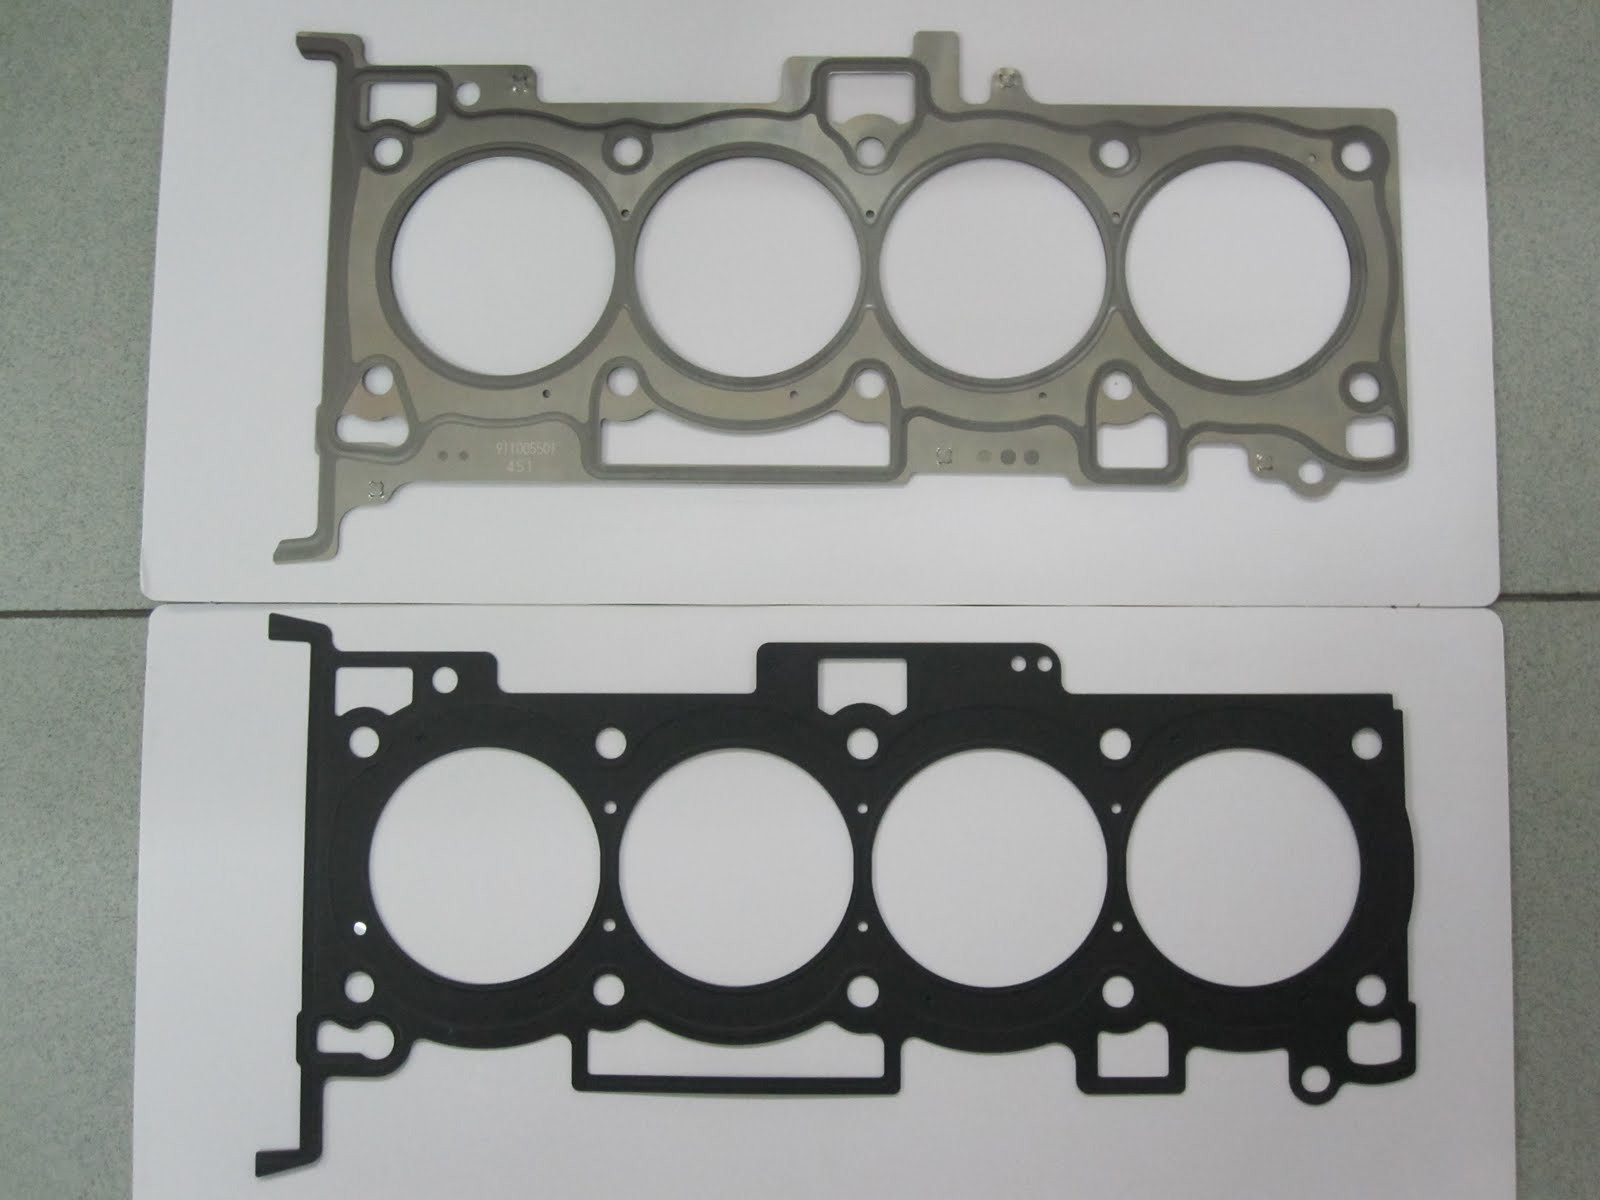 Kp Gasket January 2011 Nissan Qg18dd Wiring Diagram For The Cylinder Head As Usual Top Item Is Mitsubishi Engine And Bottom Hyundai When We Compare All Holes On